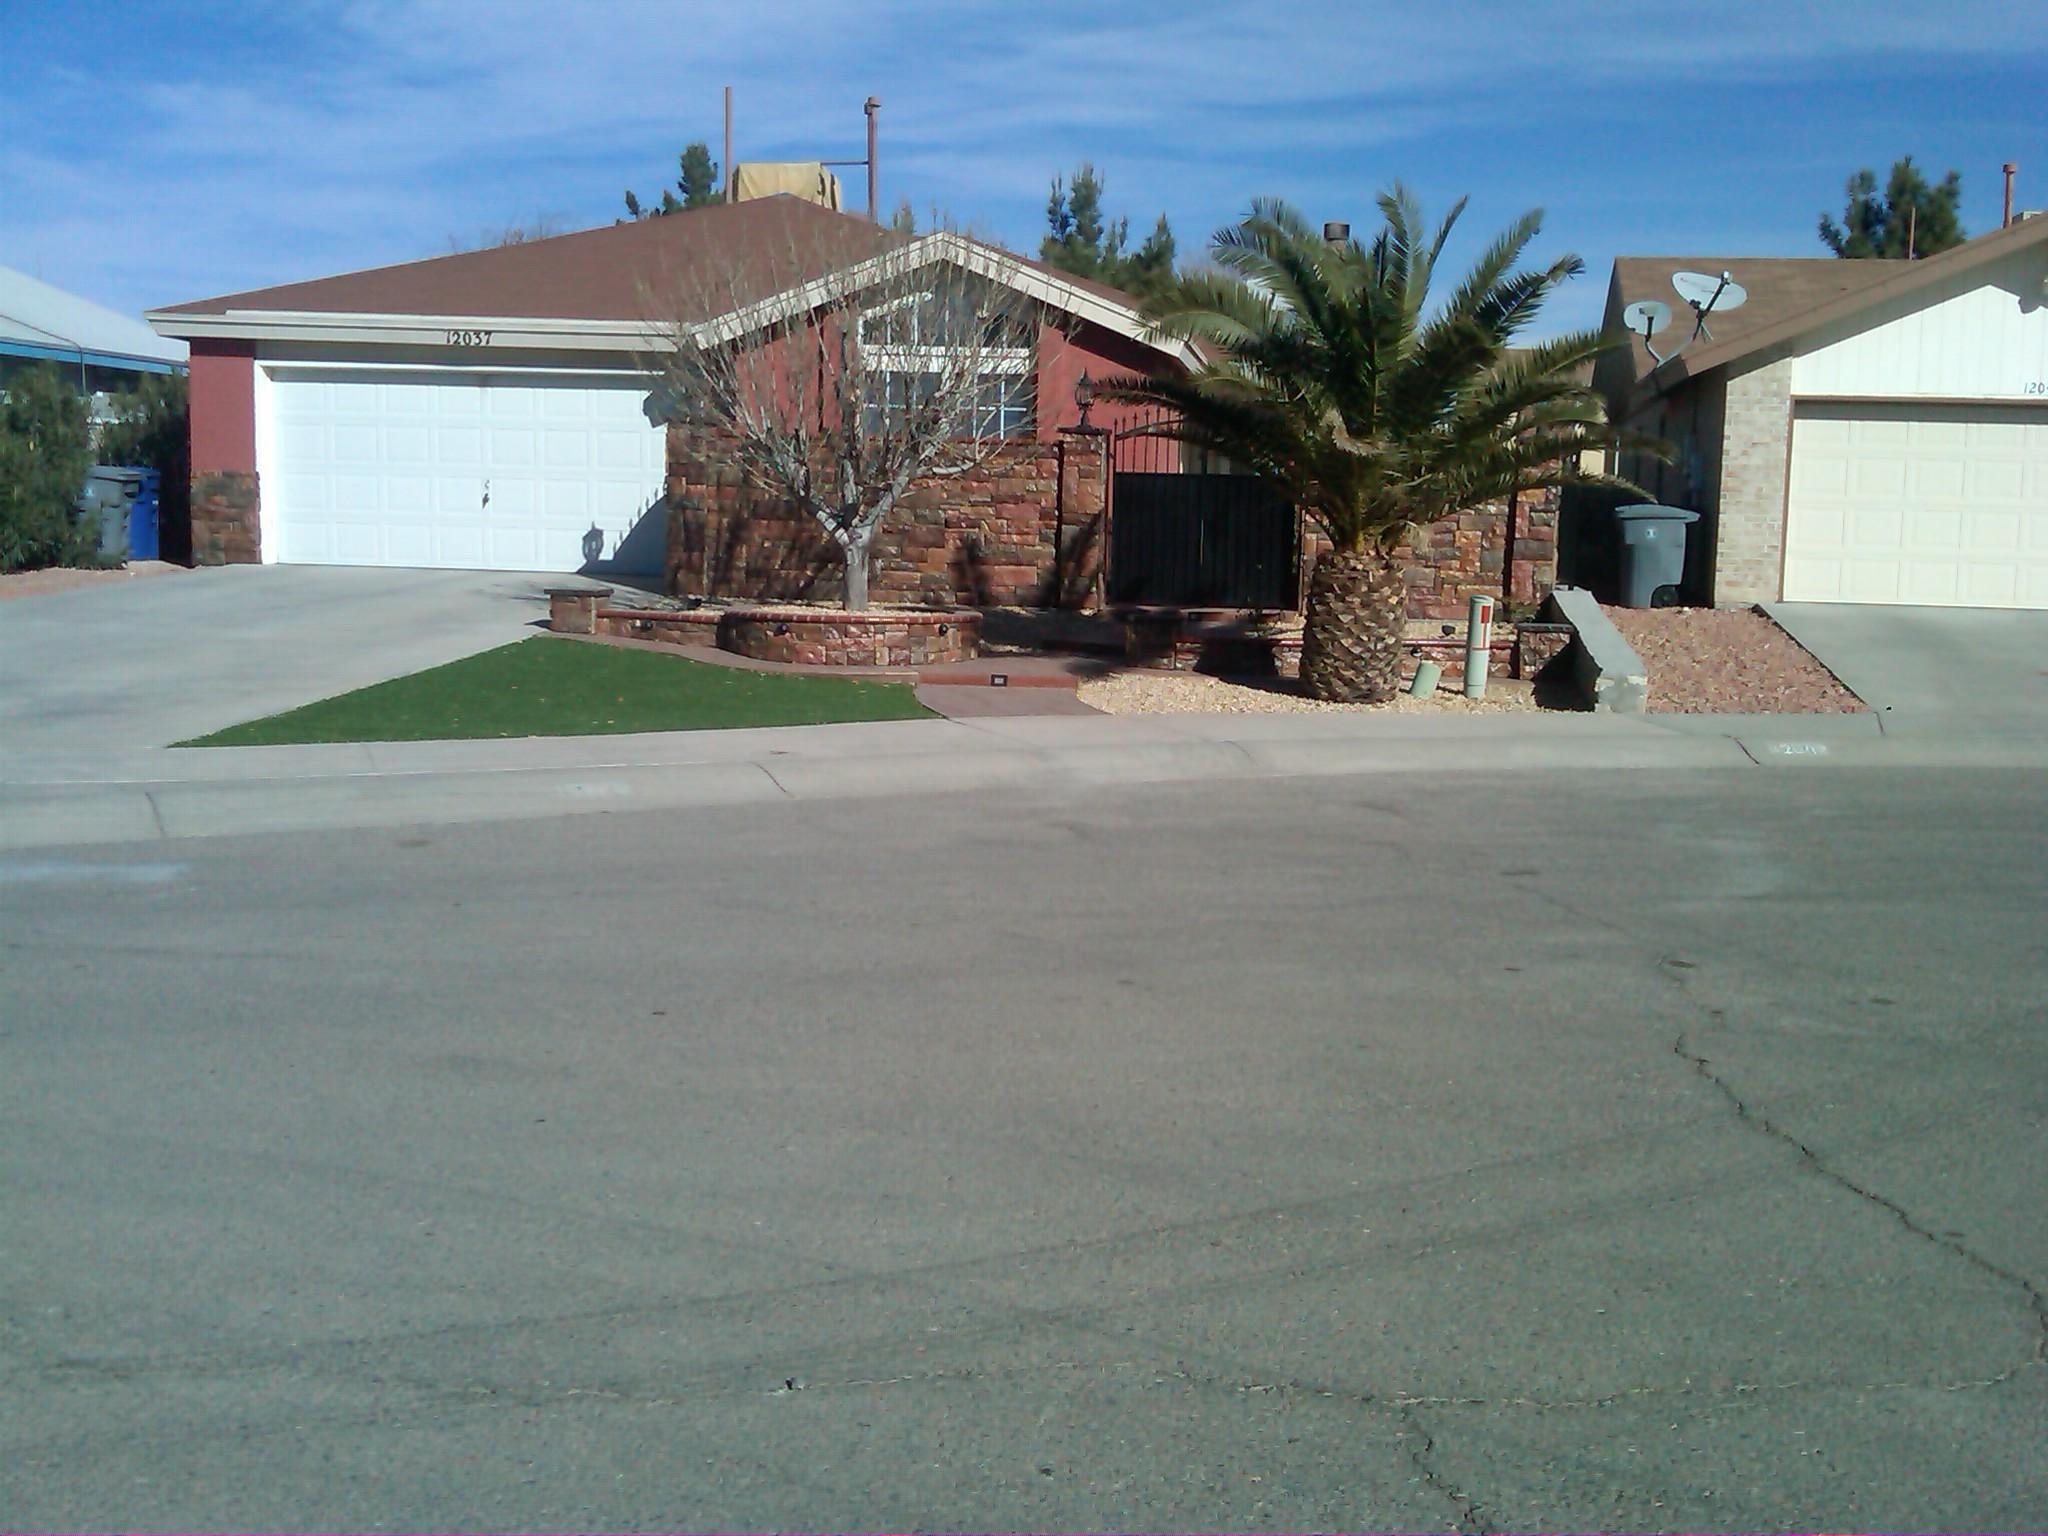 Landscaping Gravel El Paso Tx : Landscape contractors offers exquisite landscaping at an affordable